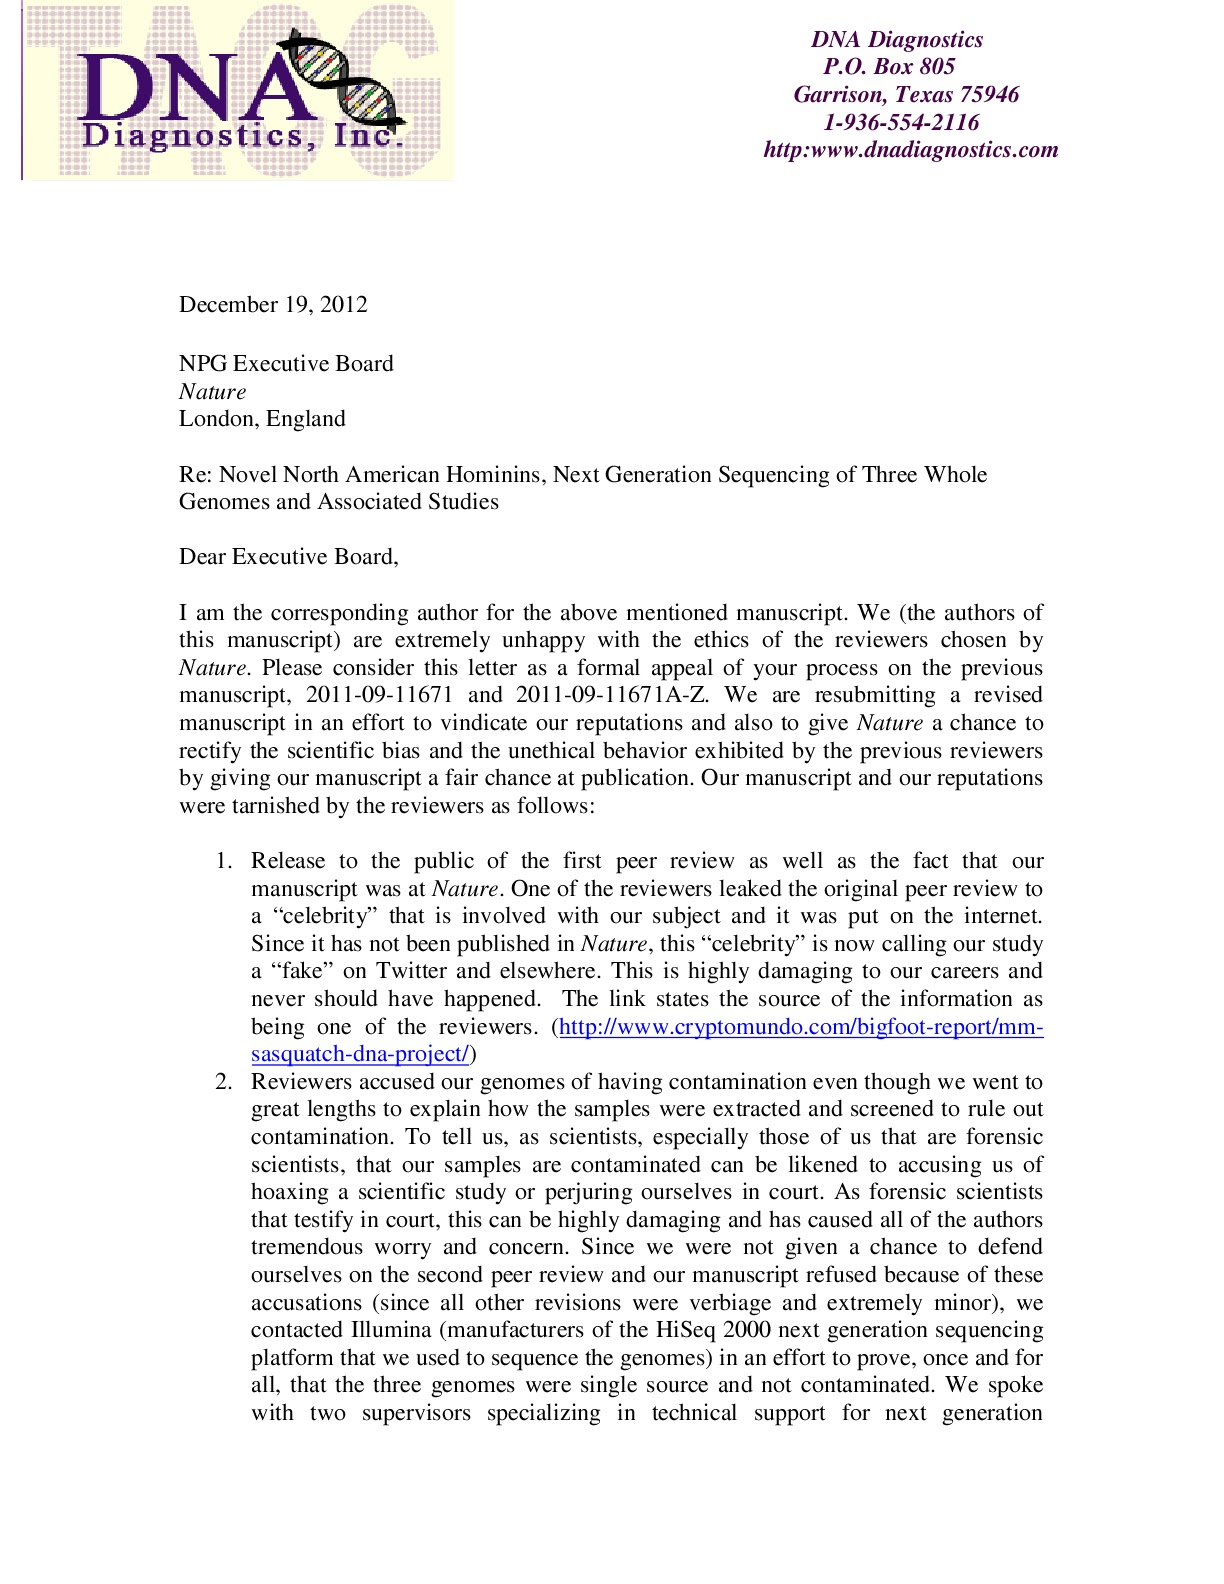 Master thesis cover letter sample